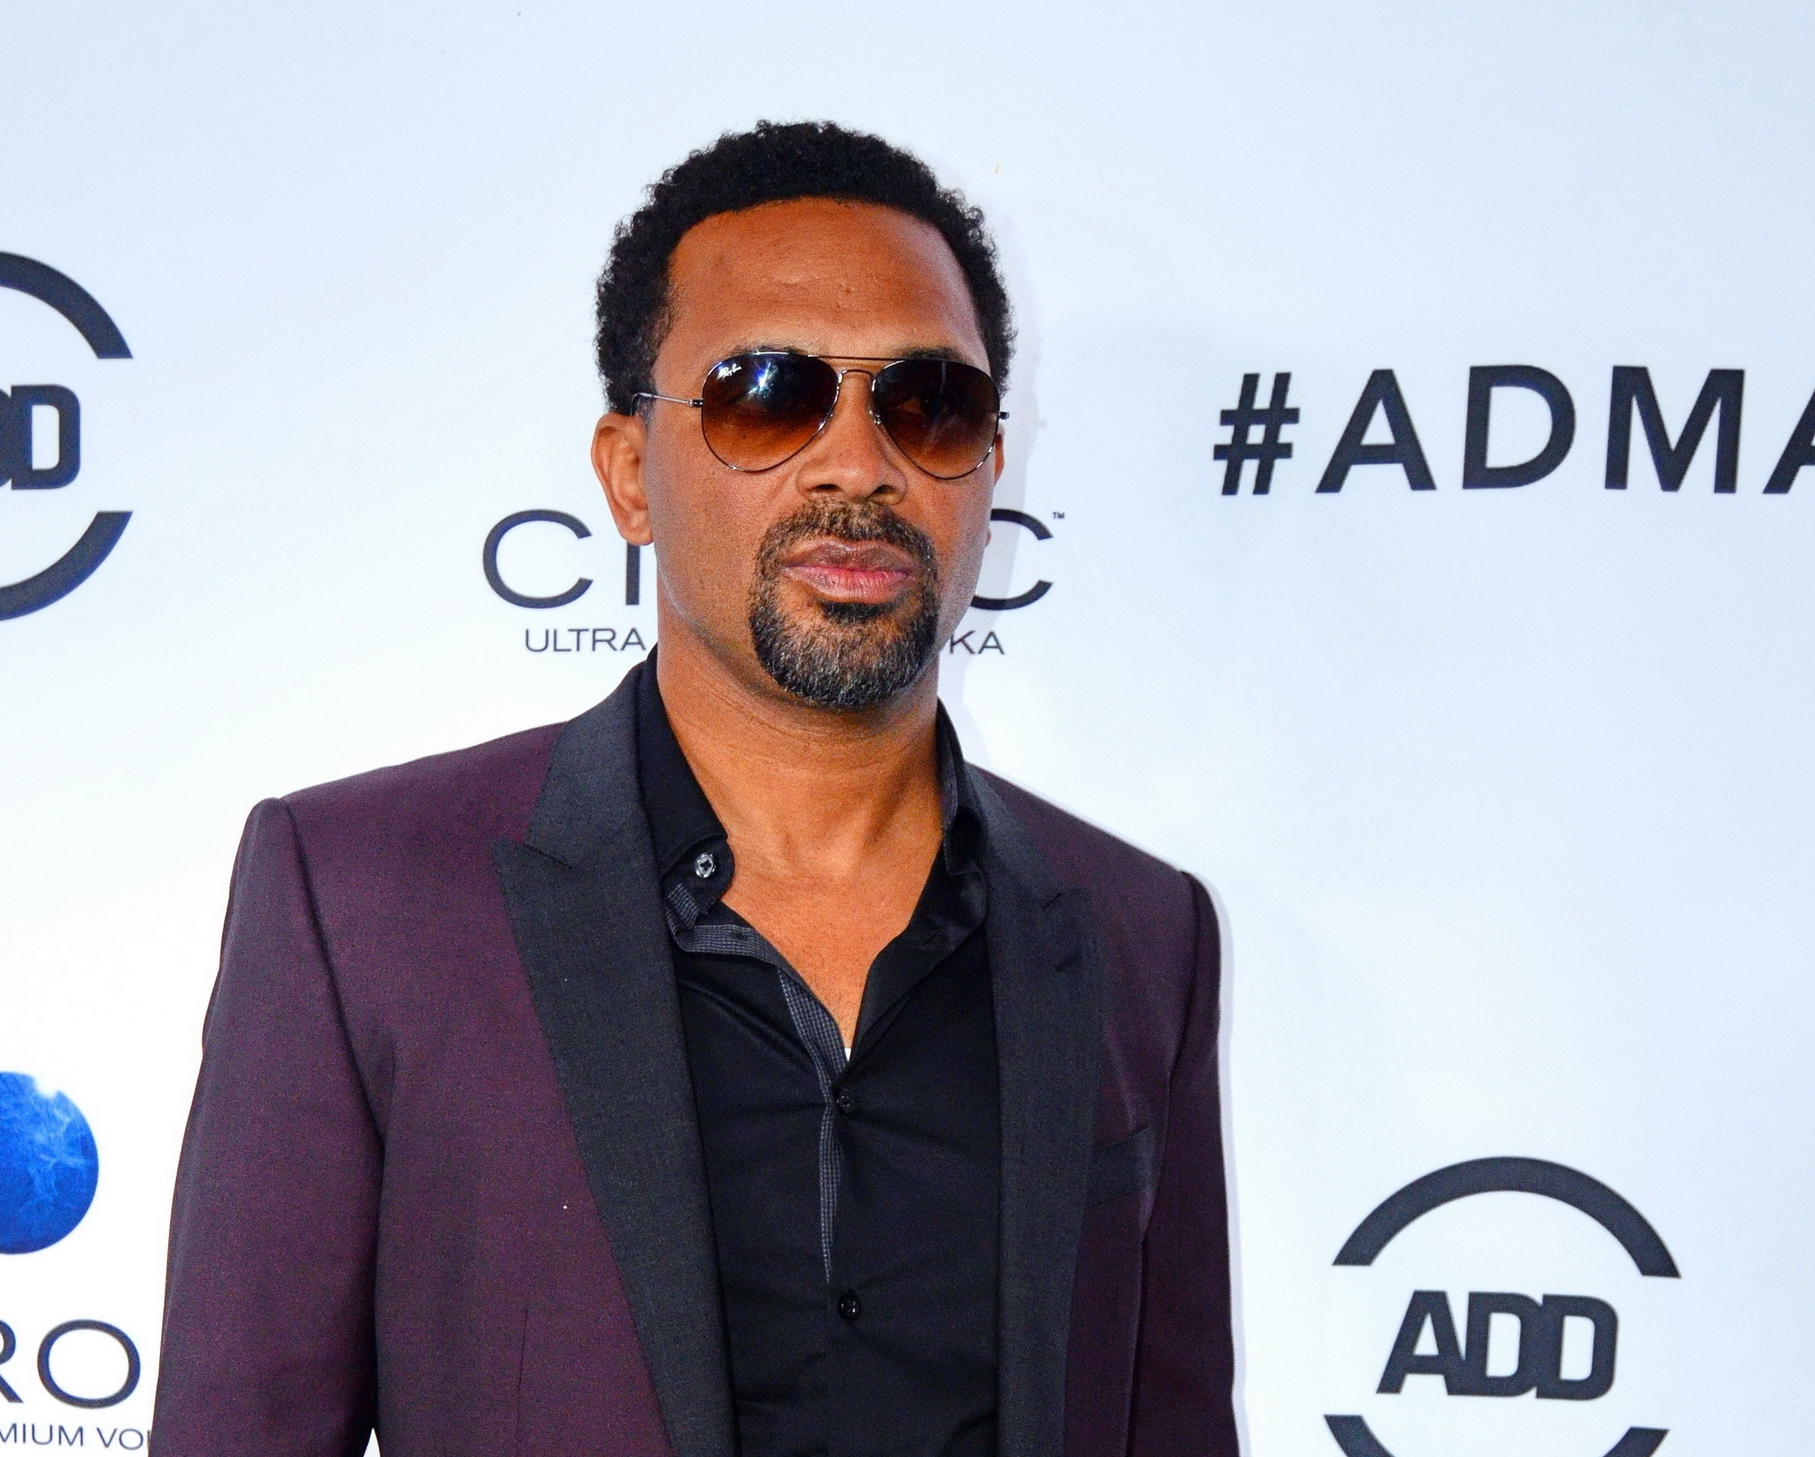 02/24/2016 - Mike Epps - 2016 All Def Movie Awards Hosted by Tony Rock - Arrivals - Lure Nightclub, 1439 Ivar Avenue - Hollywood, CA, USA - Keywords: Photography, Arts Culture and Entertainment, Celebrity, Celebrities, Person, People, All Def Movie Awards, DJ, Topix, Bestof, Lure Nightclub, Oscars So White, Hollywood, California Orientation: Portrait Face Count: 1 - False - Photo Credit: Sir Jones / PRPhotos.com - Contact (1-866-551-7827) - Portrait Face Count: 1